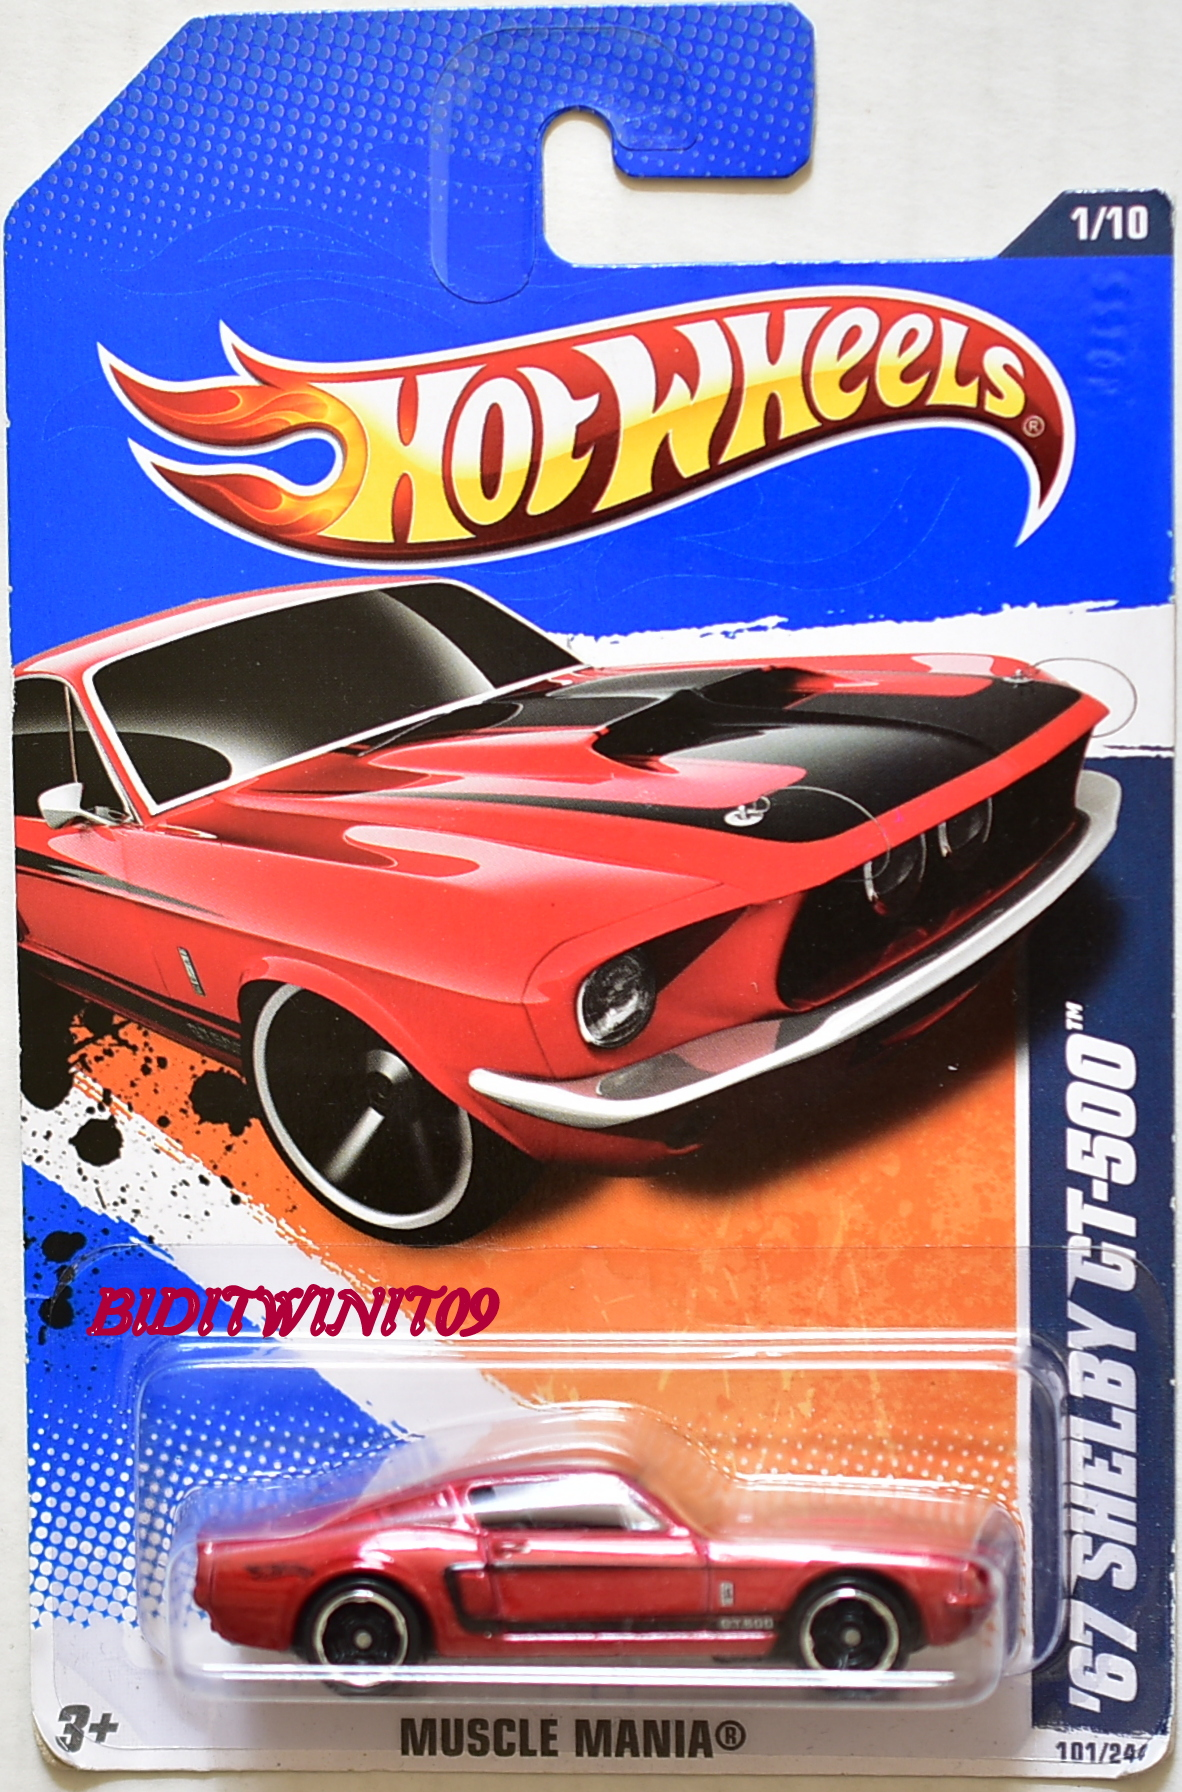 HOT WHEELS 2011 #01/10 '67 SHELBY GT-500 MUSCLE MANIA